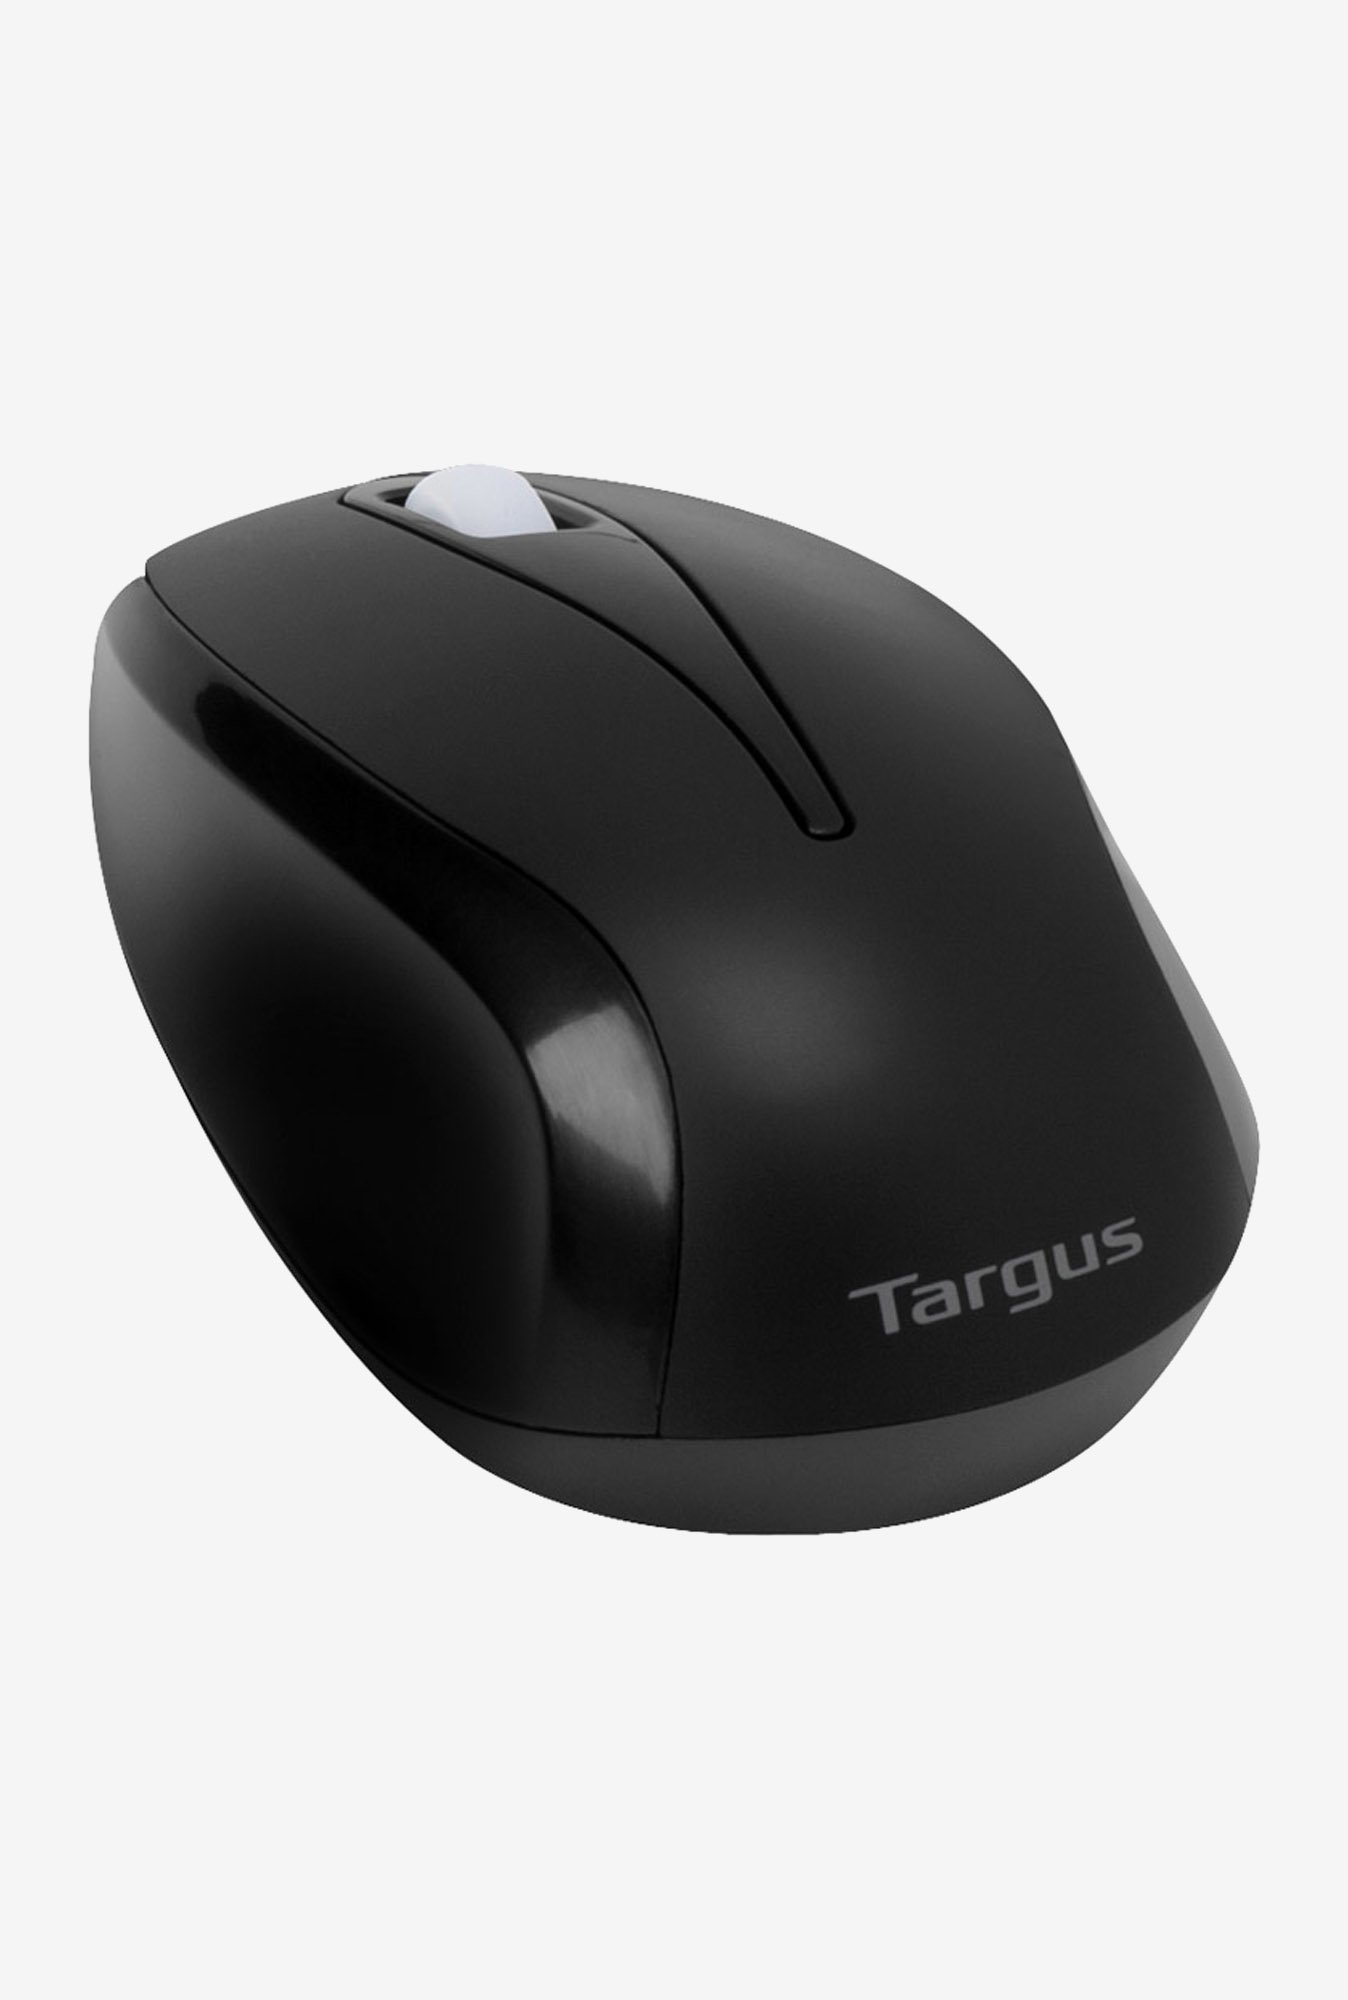 Targus Optical AMW060AP Wireless Mouse Black